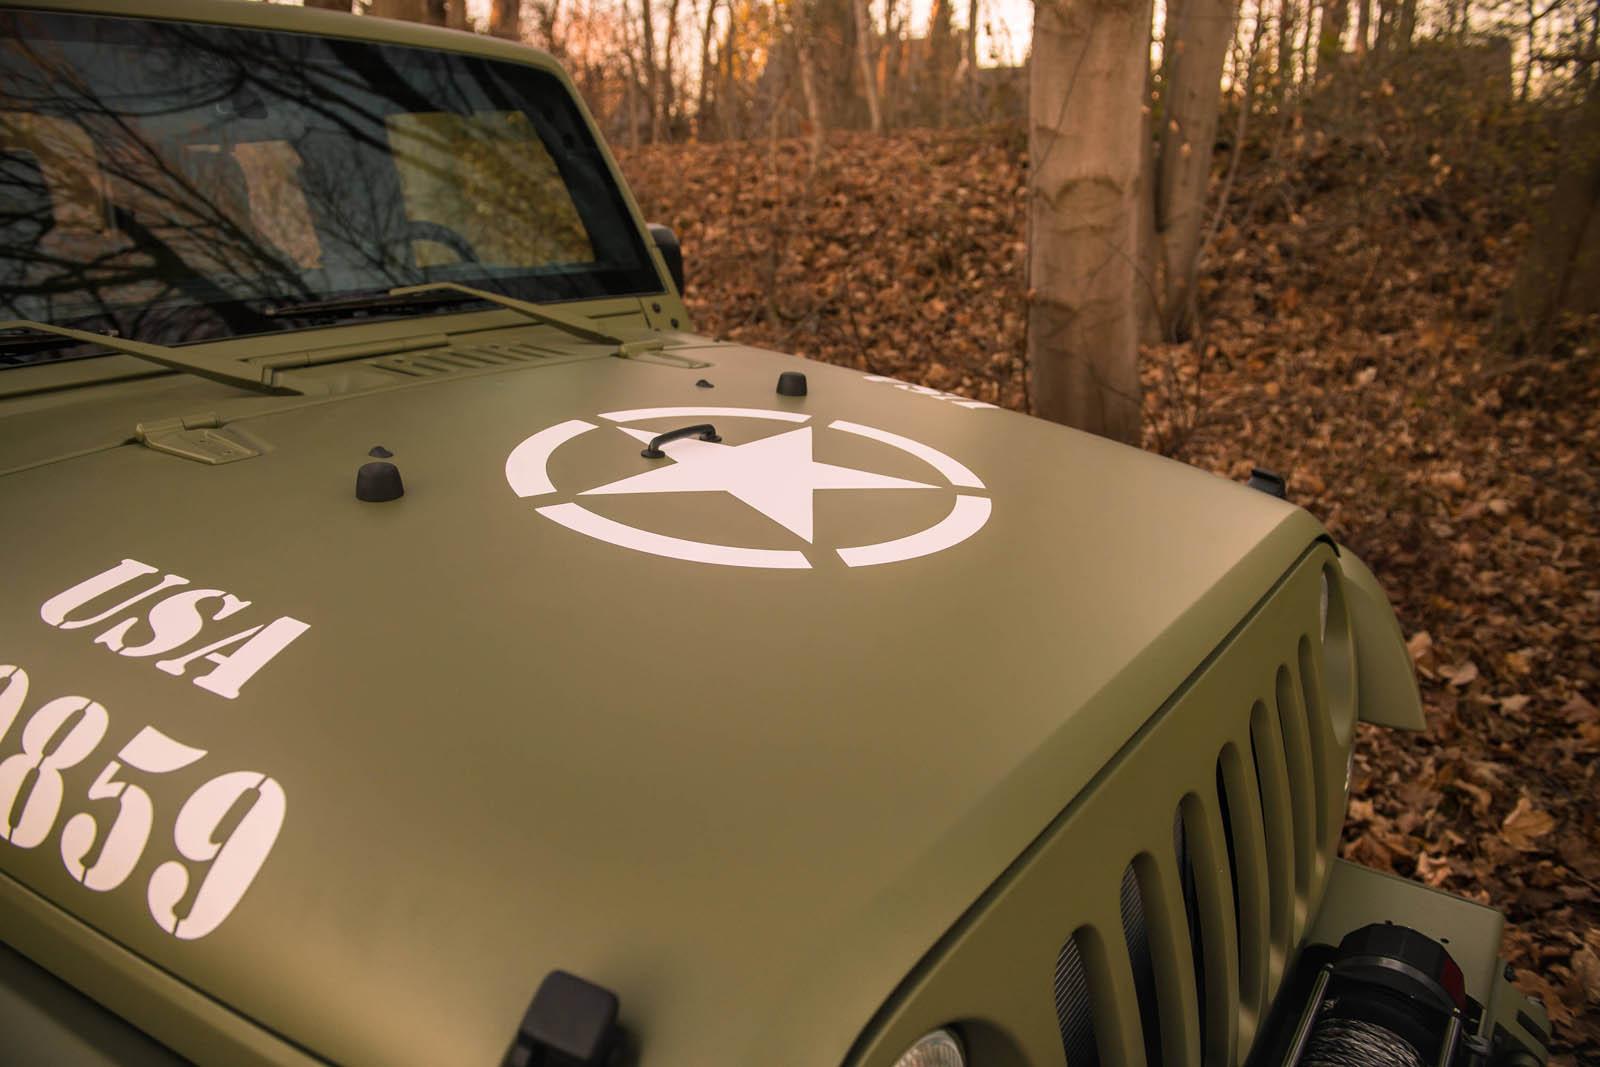 Jeep Wrangler Willys by Geiger Cars (11)